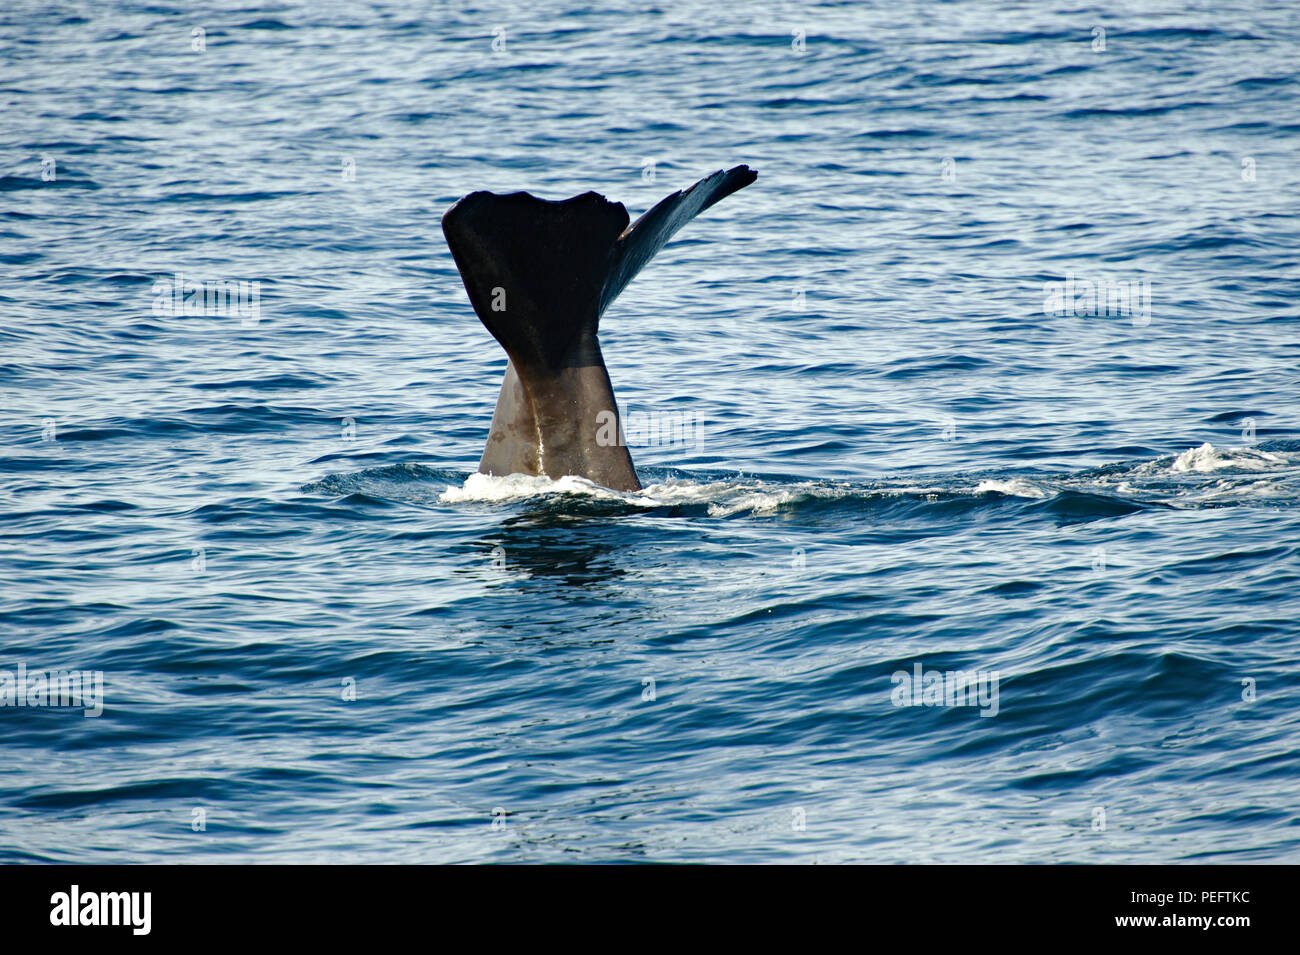 Spermwhale diving to hunt, Kaikoura Coast, South Island, New Zealand - Stock Image